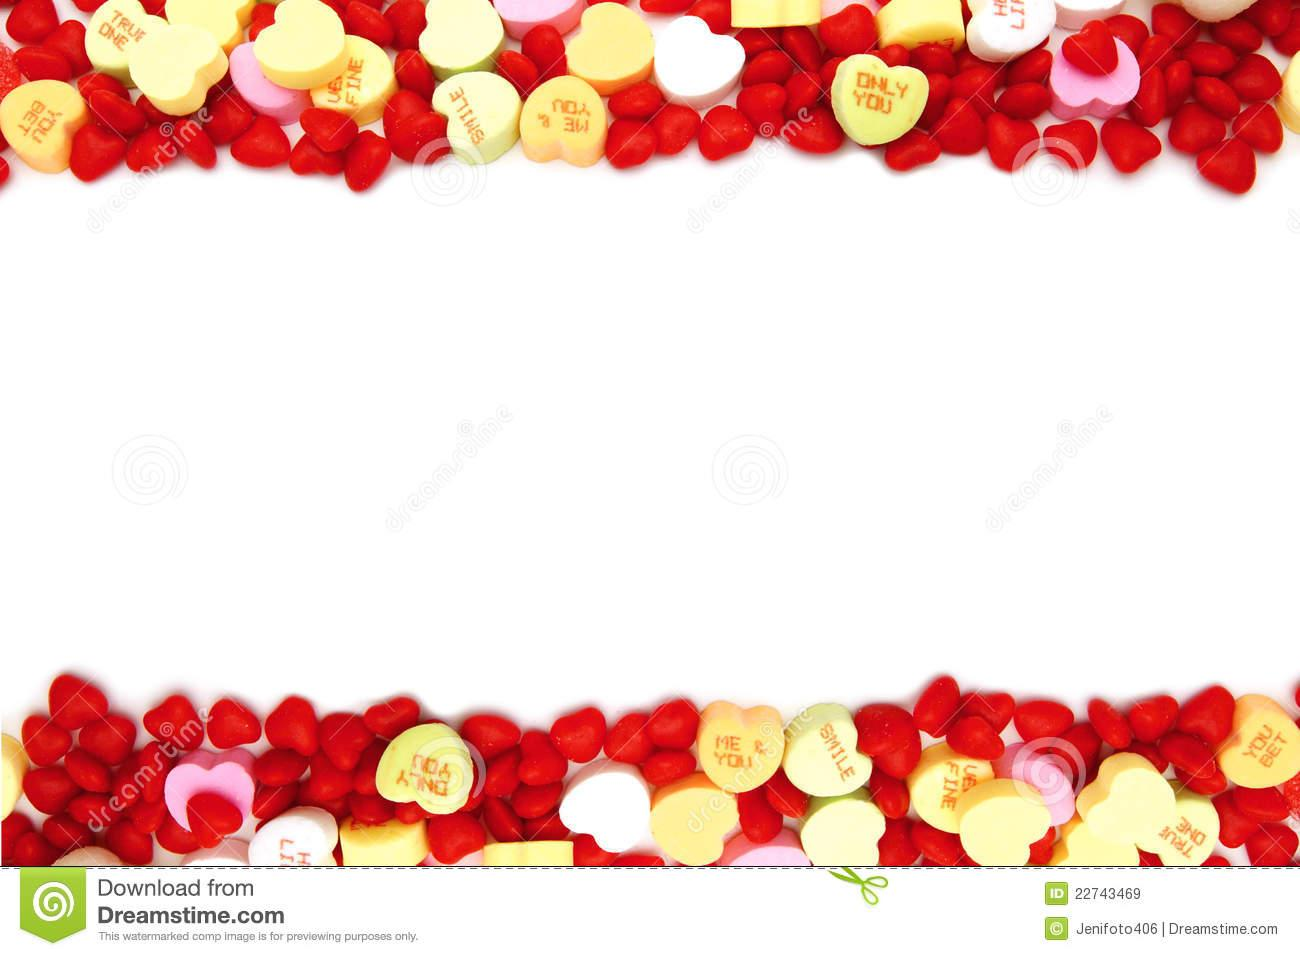 valentines day candy border royalty free stock images image NDpzEV clipart